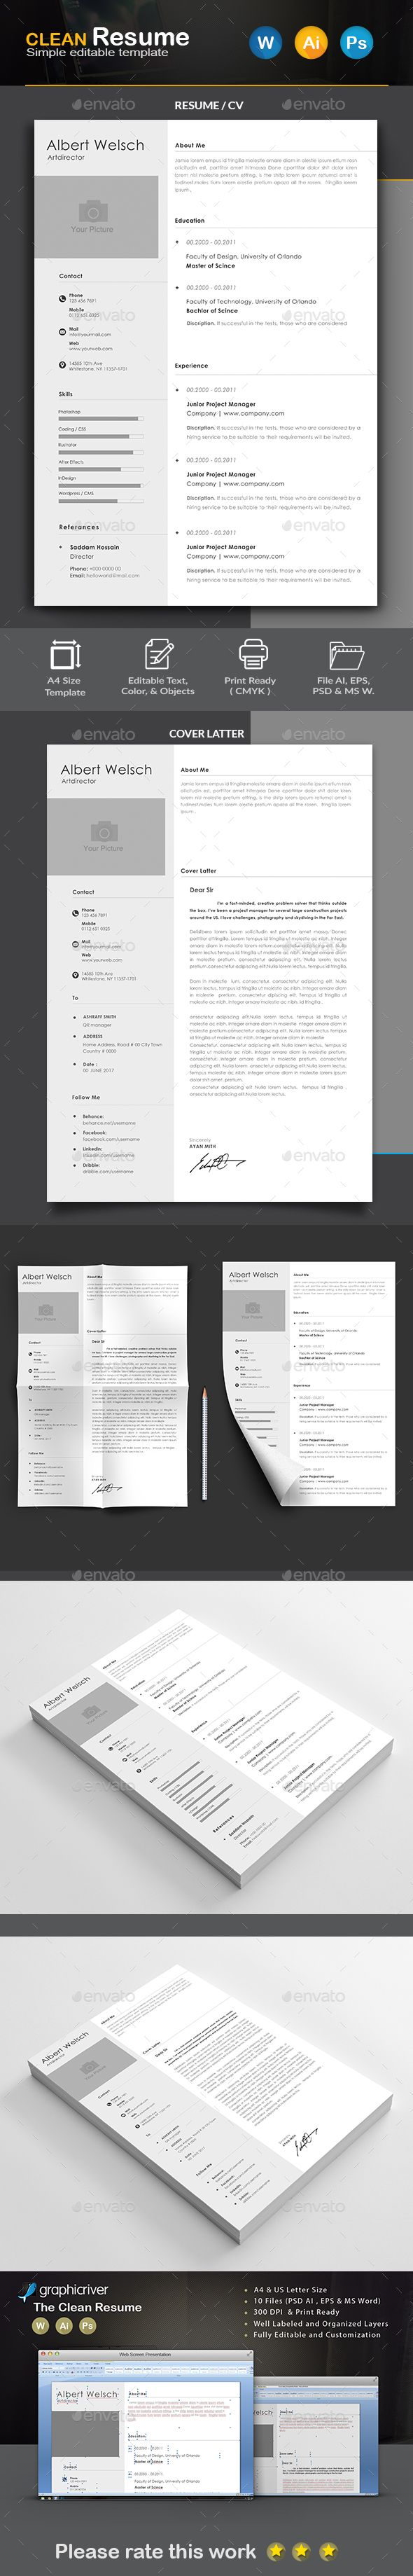 Functional Resume Template Microsoft%0A Clean Resume by Createart PRODUCT FEATURES A  Size     DPI u     Print ReadyCMYK  Color      in